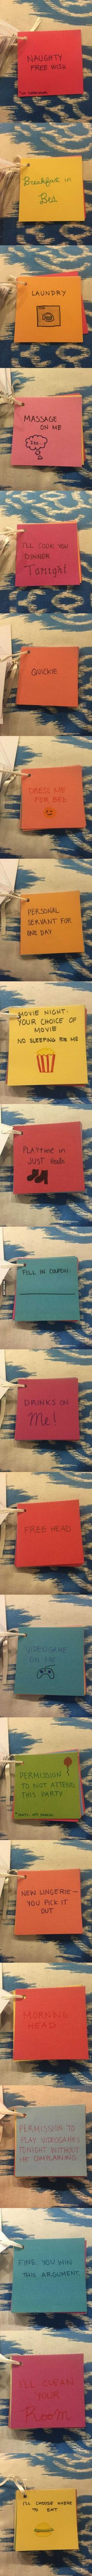 This Guy's Girlfriend Made Him Coupons For Their Anniversary More